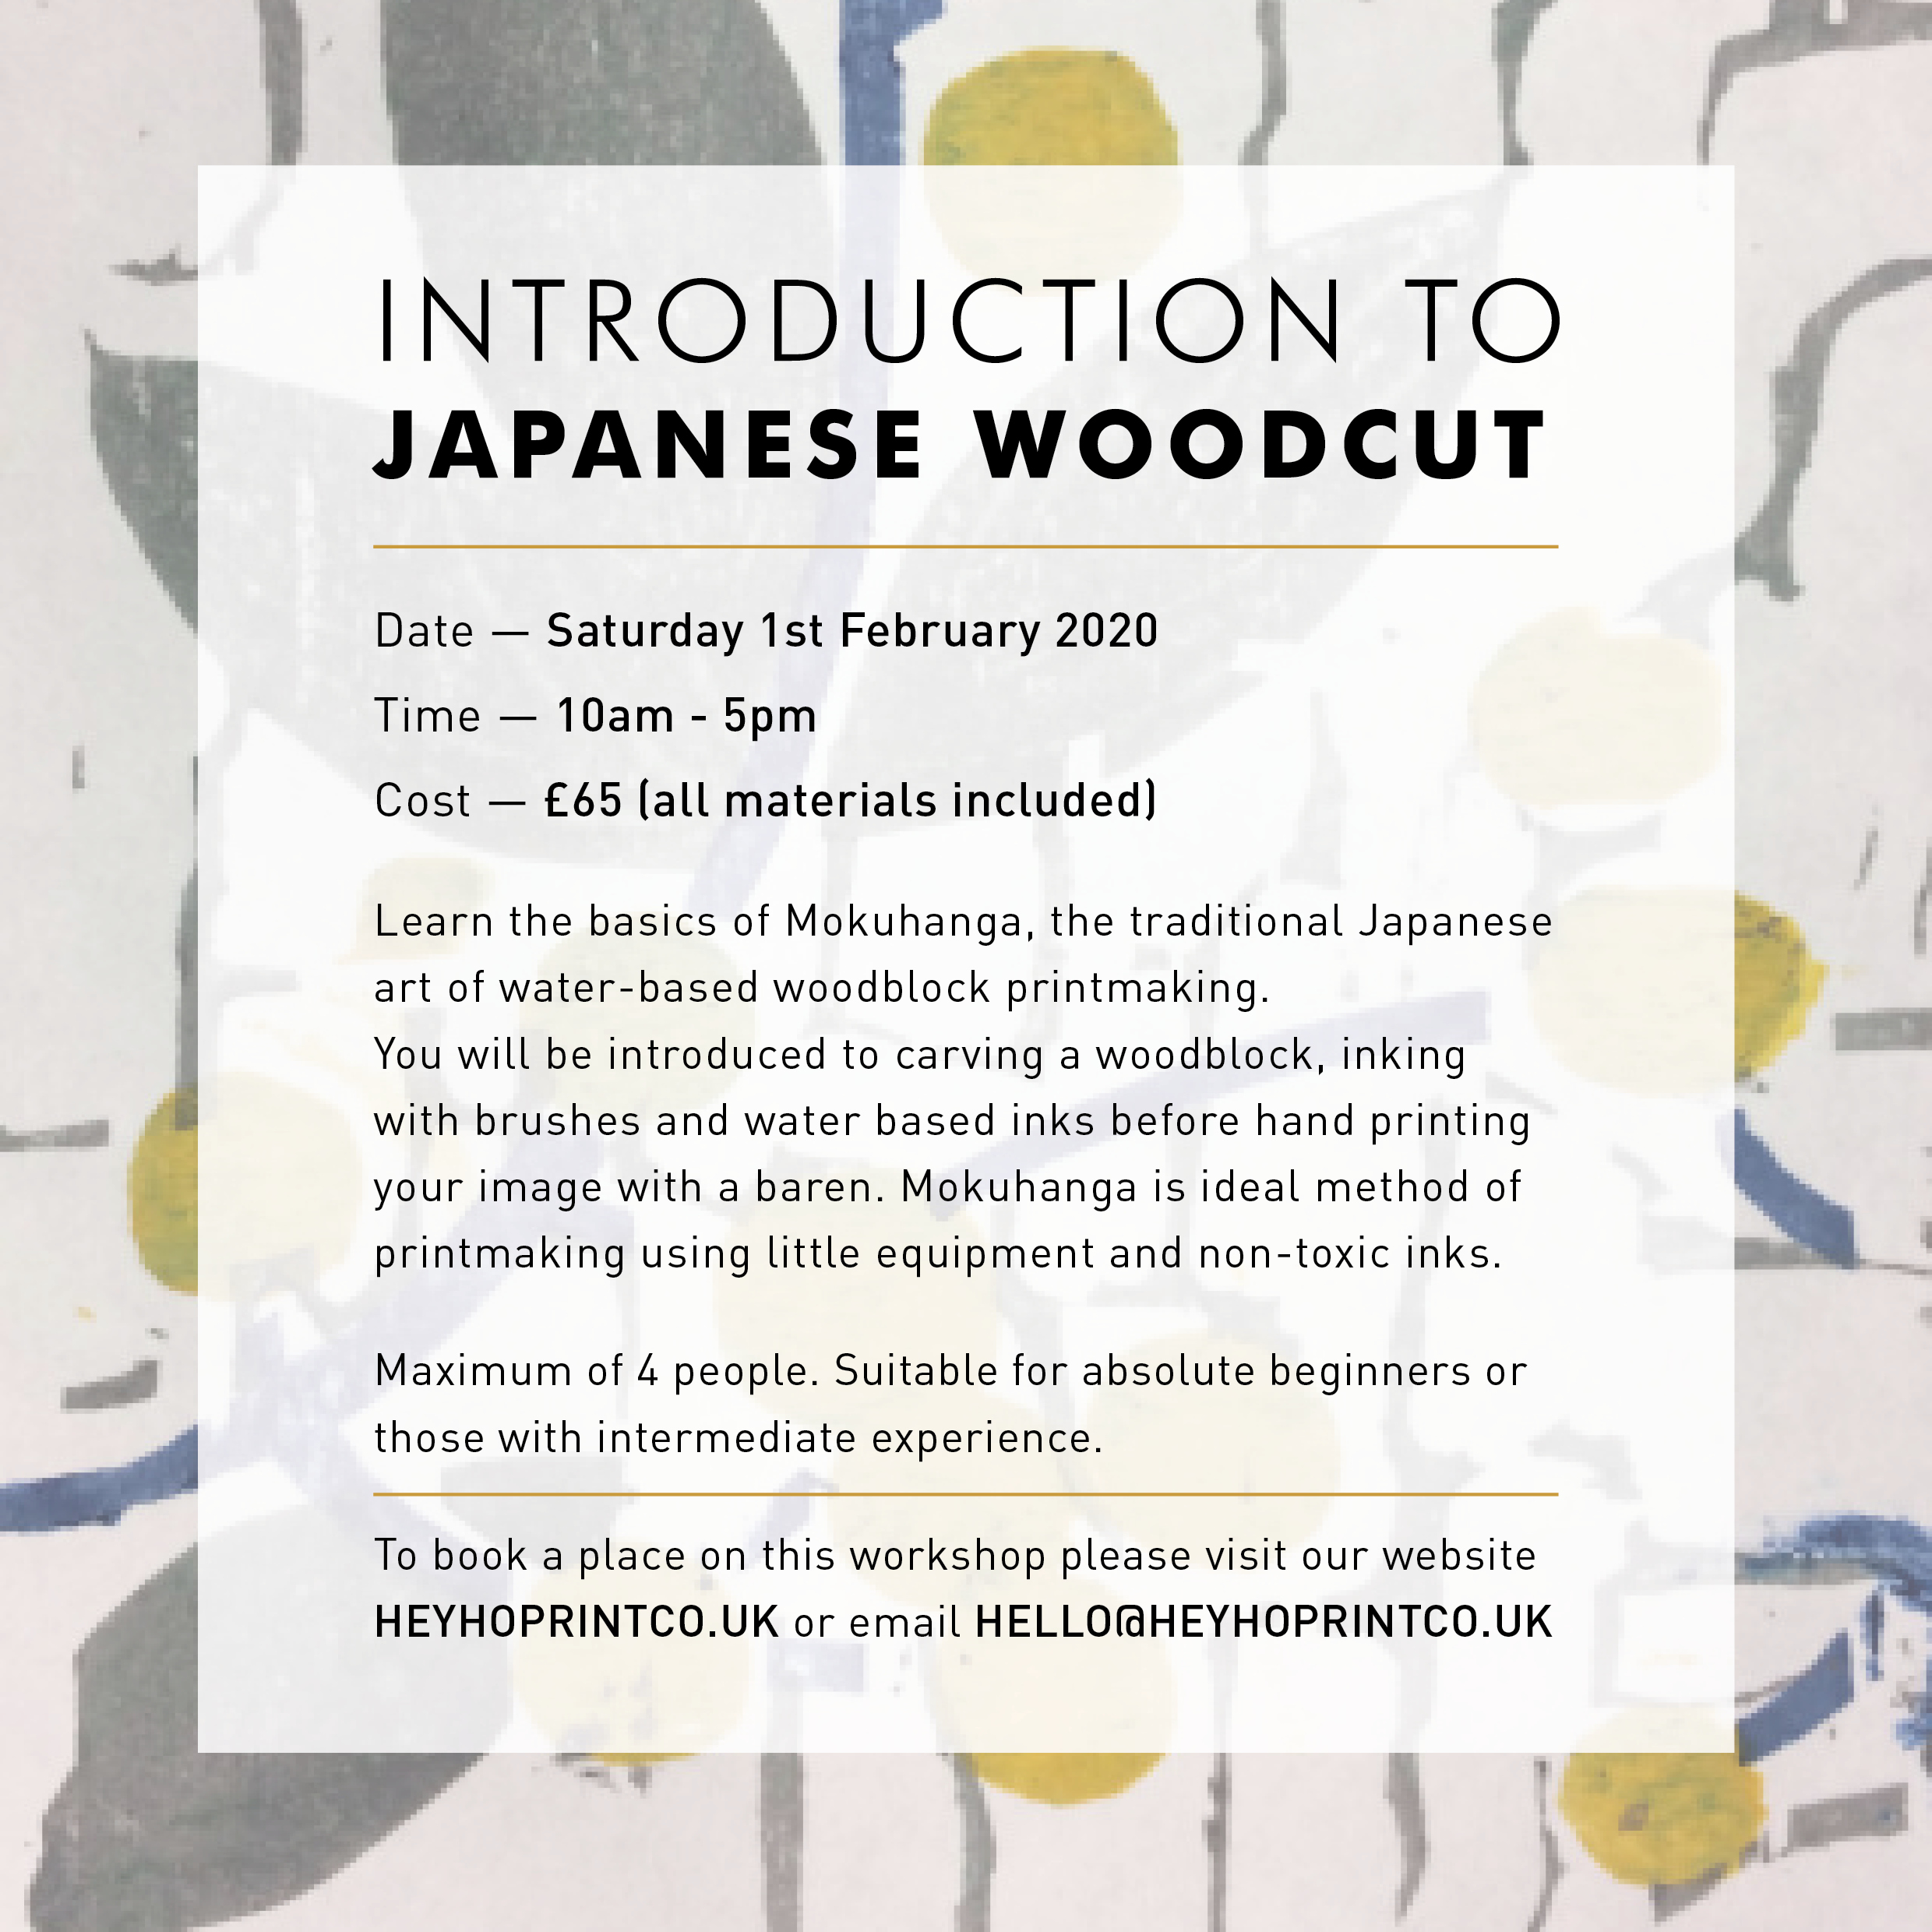 Introduction to Japanese Woodcut - February 1st 2020